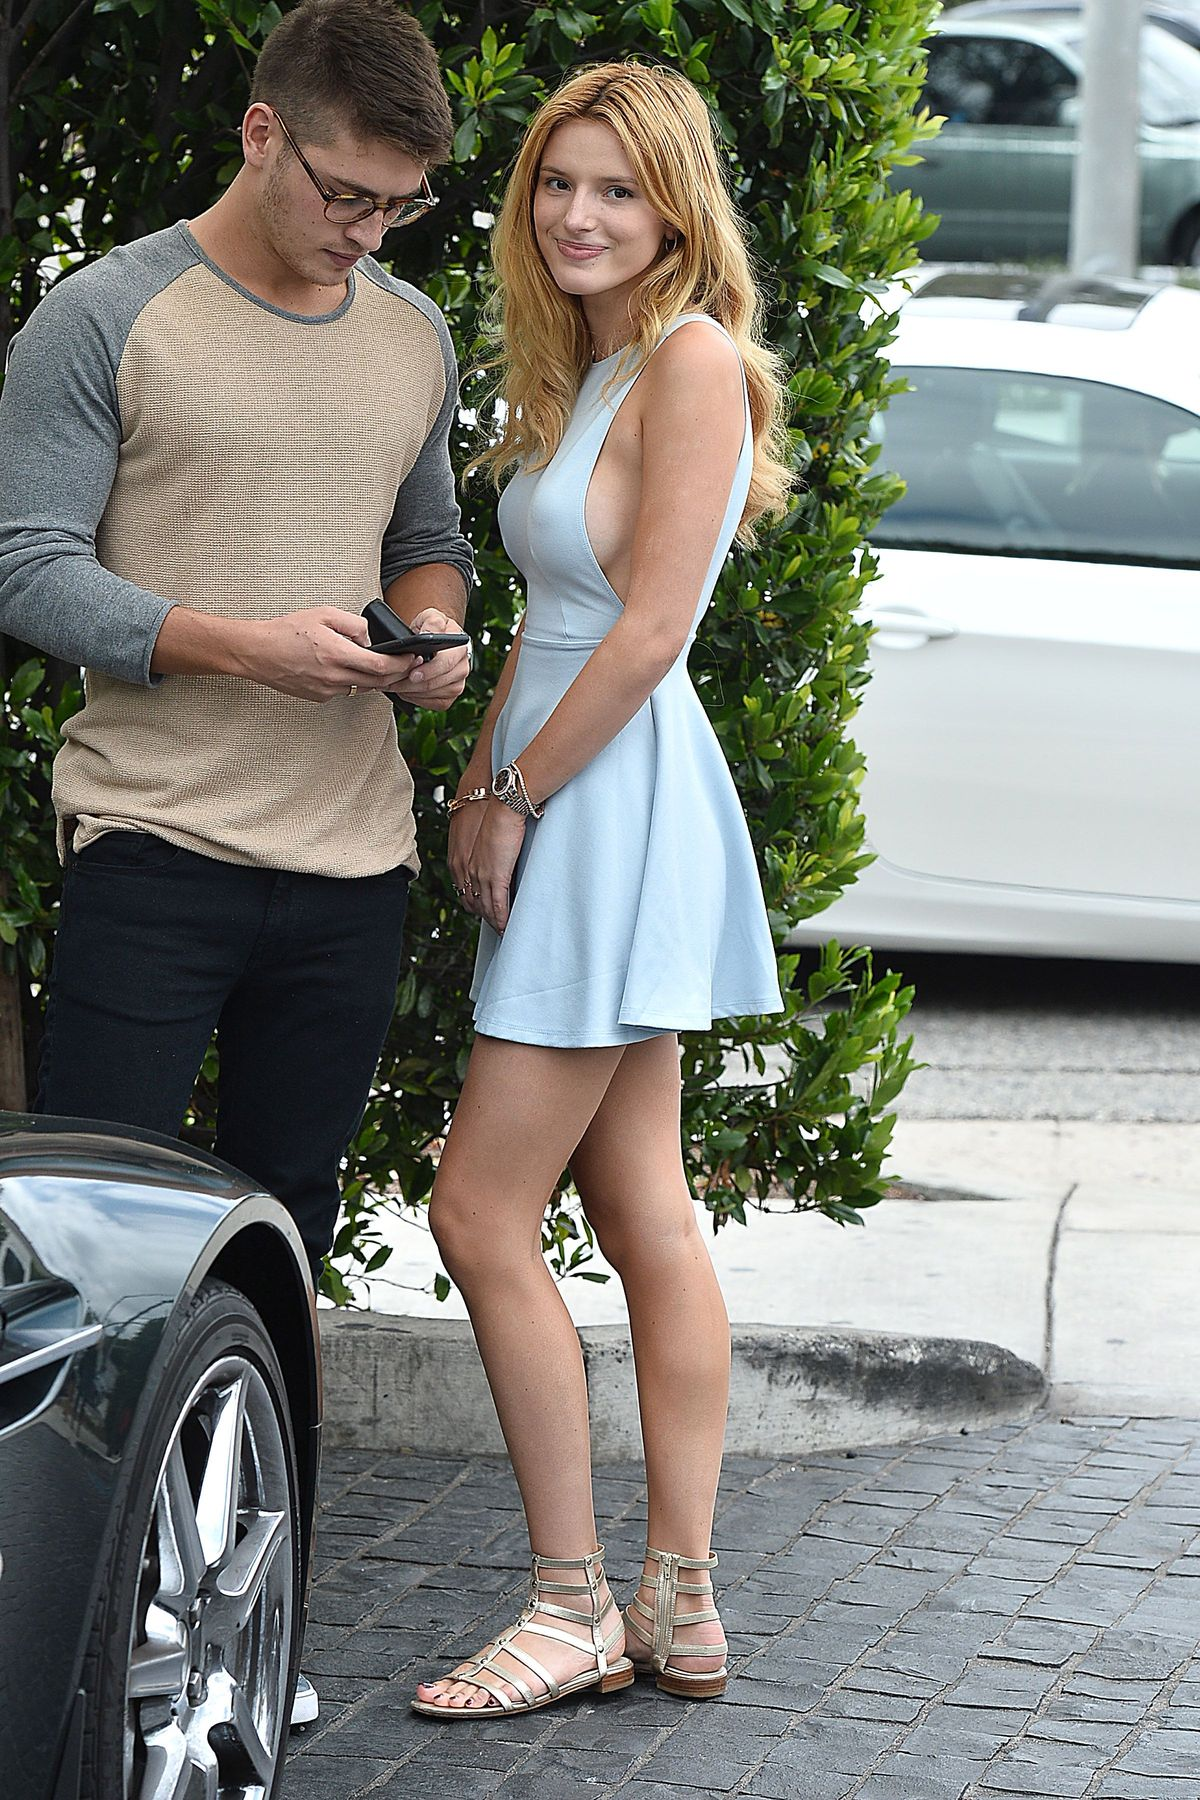 Bella Thorne Braless 23 TheFappening.nu